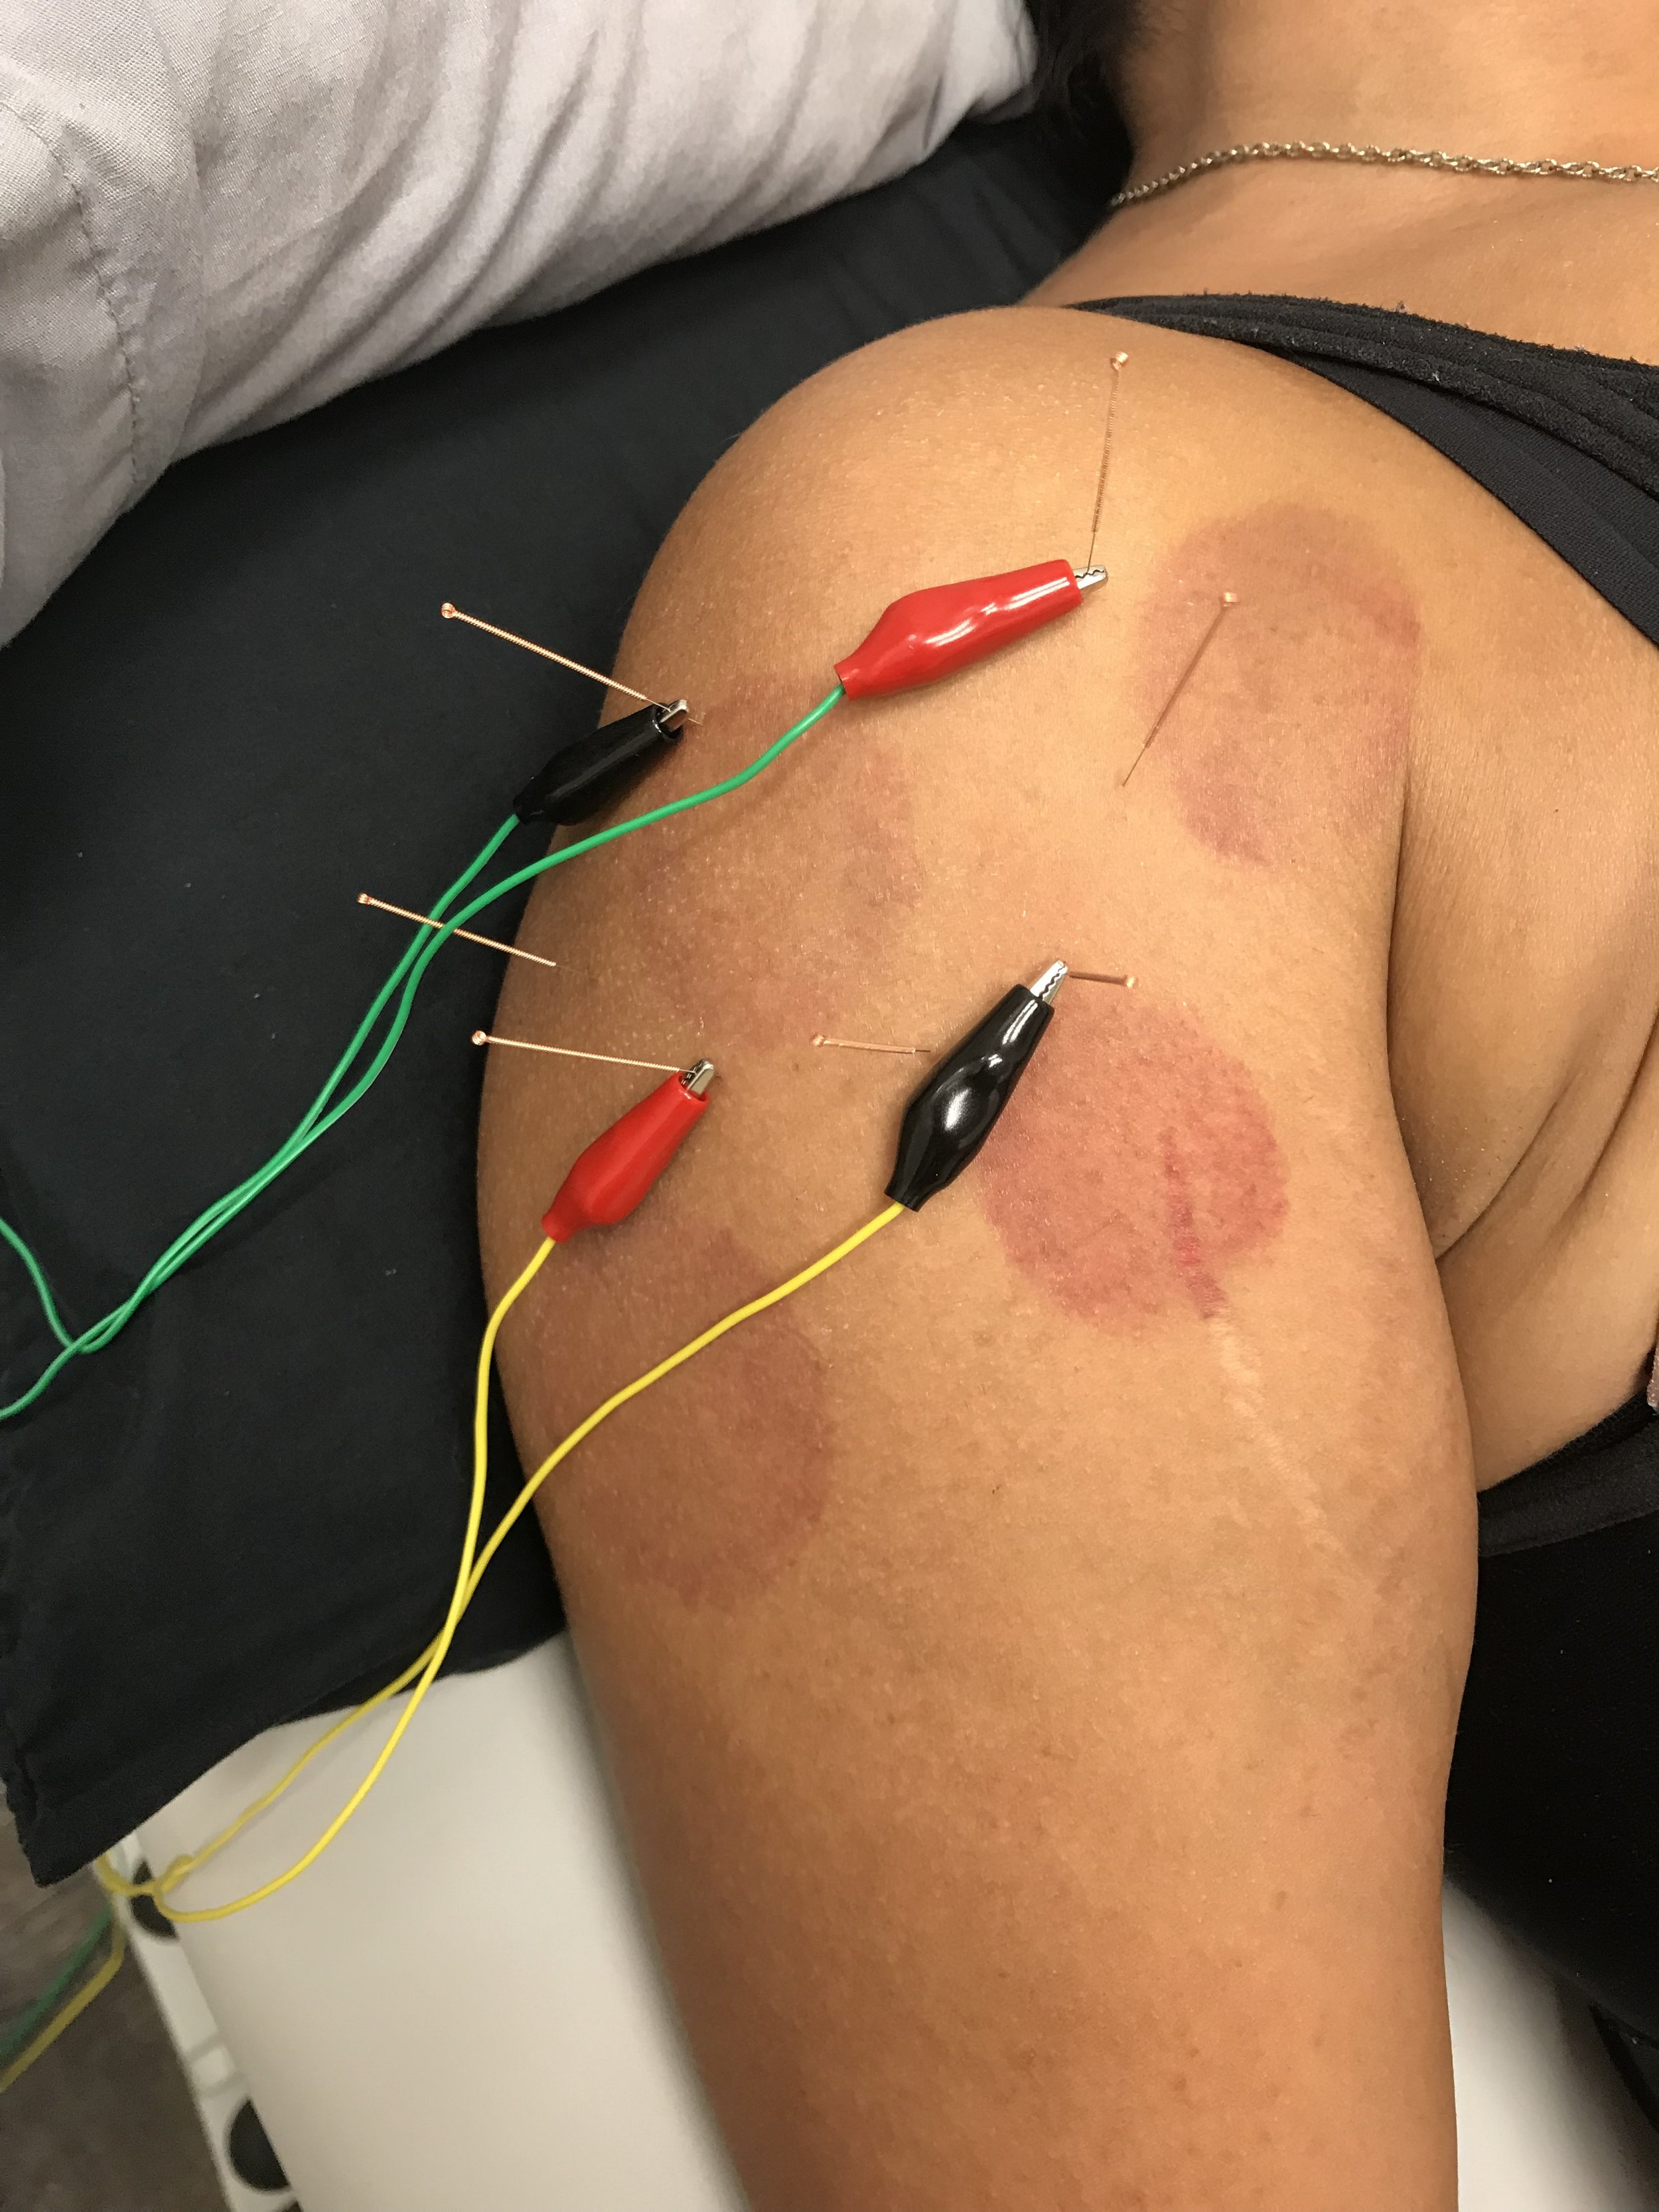 This patient received acupuncture with elecro-stimulation and bruising from cupping performed the previous day to help relieve shoulder pain